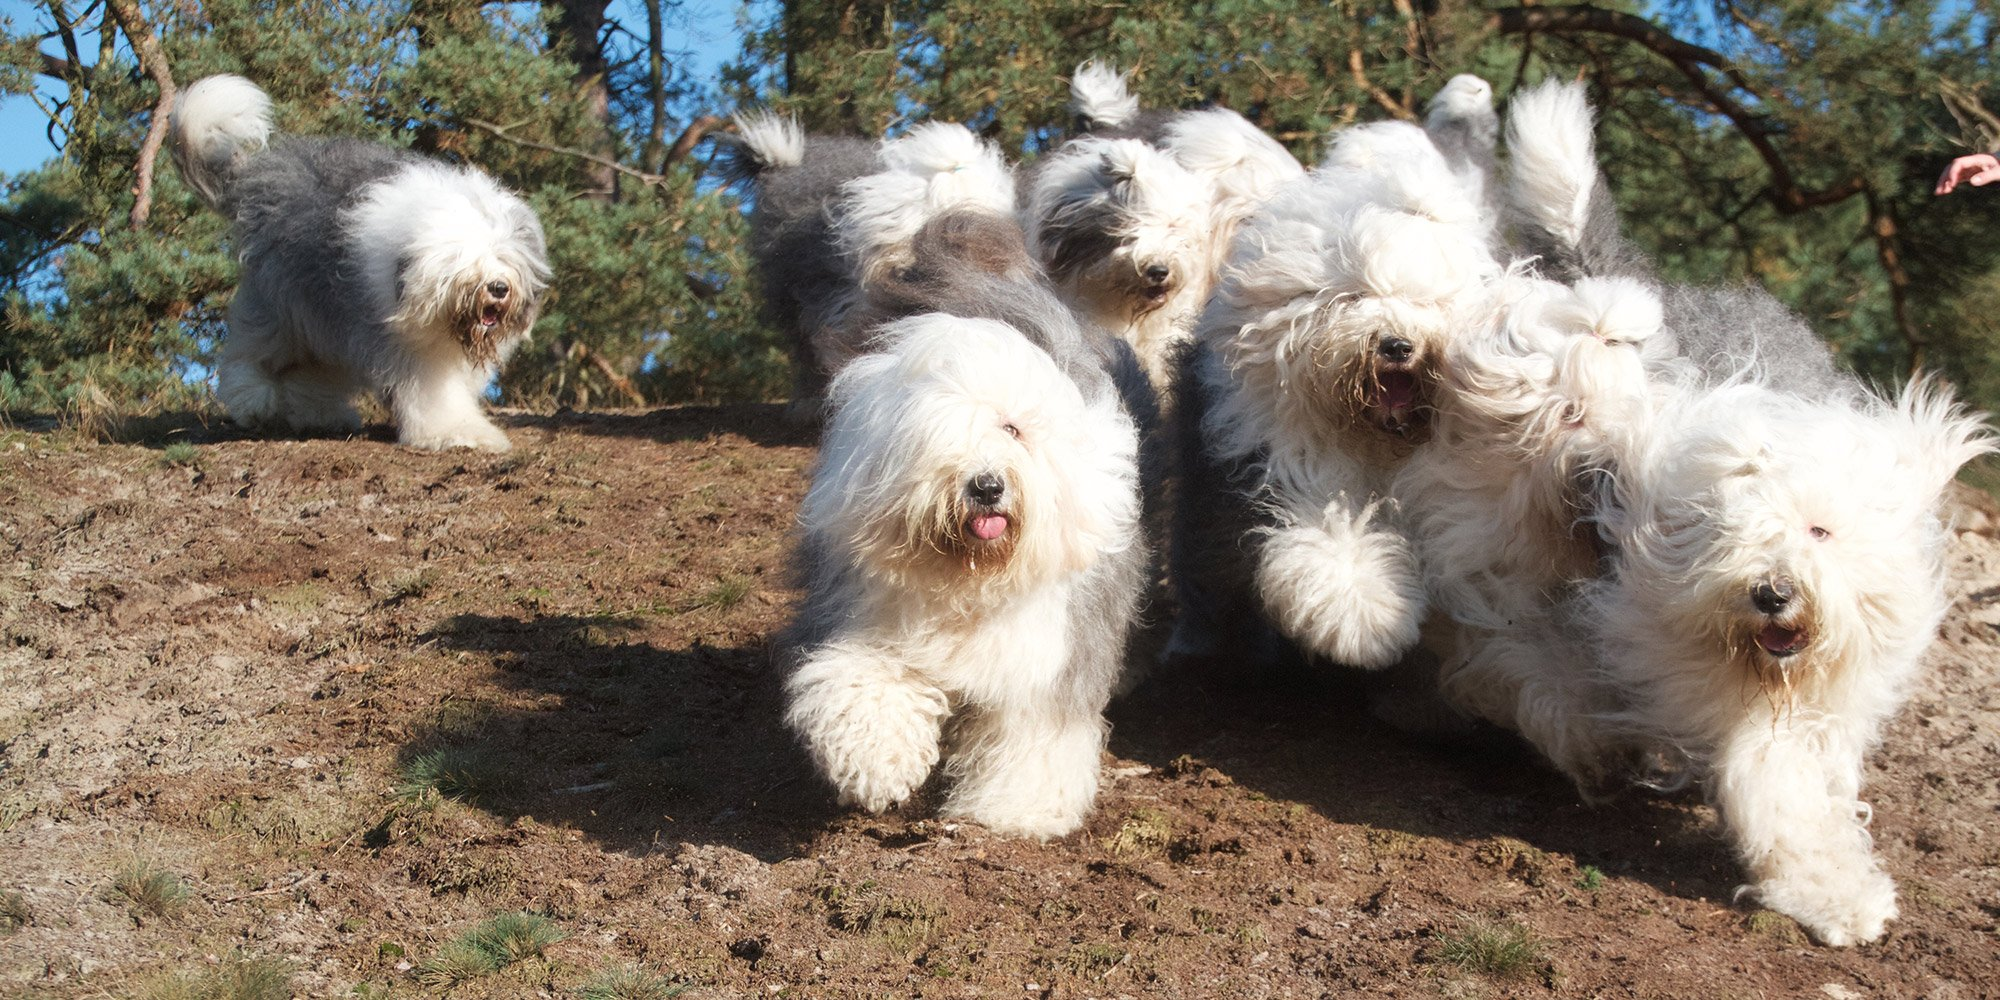 The most complete website about the Old English Sheepdog